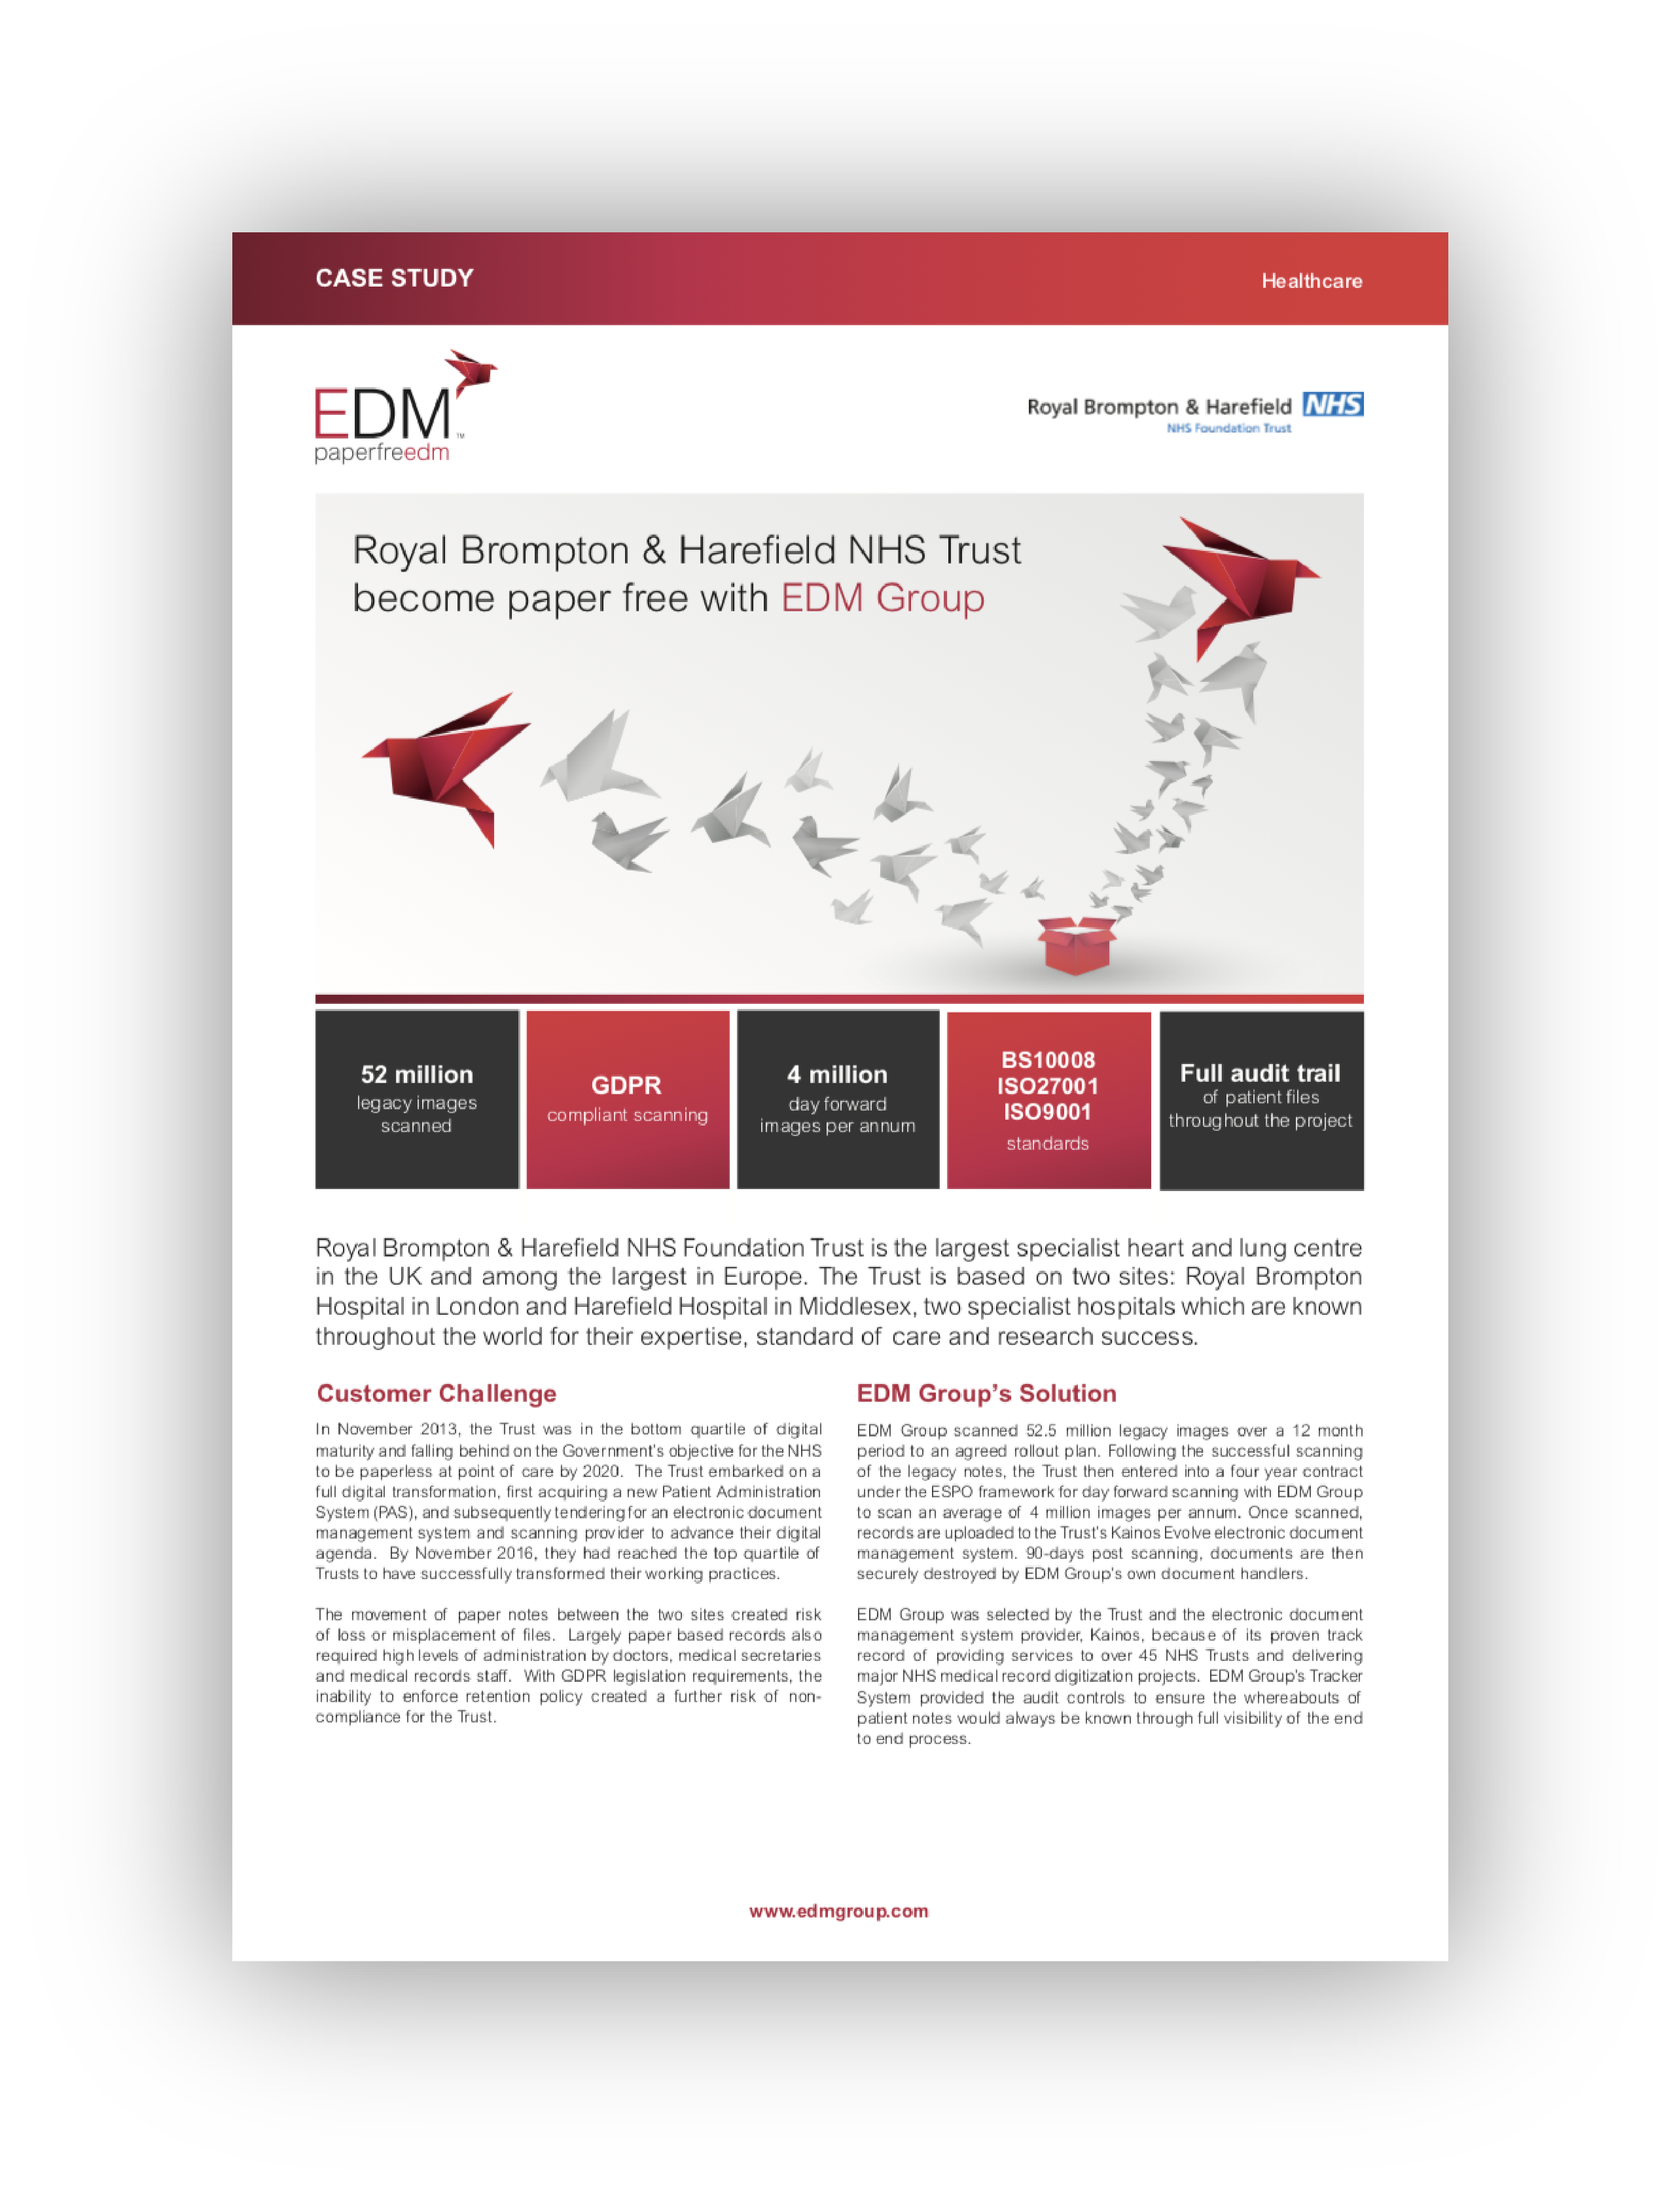 royal-brompton-harefield-nhs-trust-become-paper-free-with-edm-group